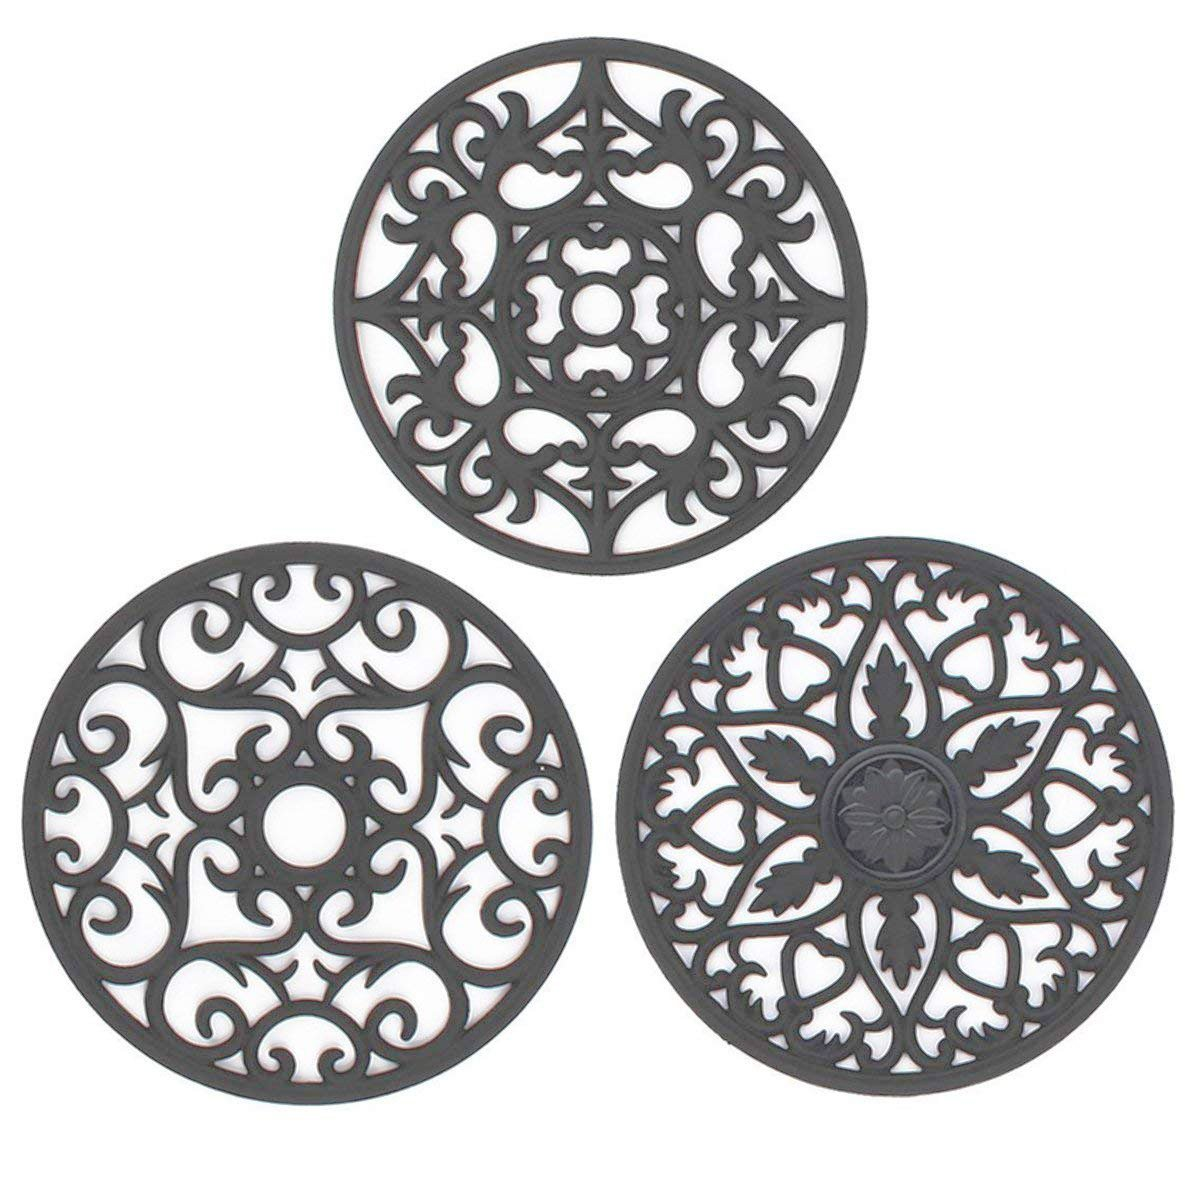 IPHOX 3 Set Silicone Multi-Use Intricately Carved Trivet Mat for Hot Dishes Kitchen Mats, Table Mats, Bowl Mats, Dish Mats and Coasters Insulated Flexible Durable Non Slip Coasters Hot Pads(Gray)